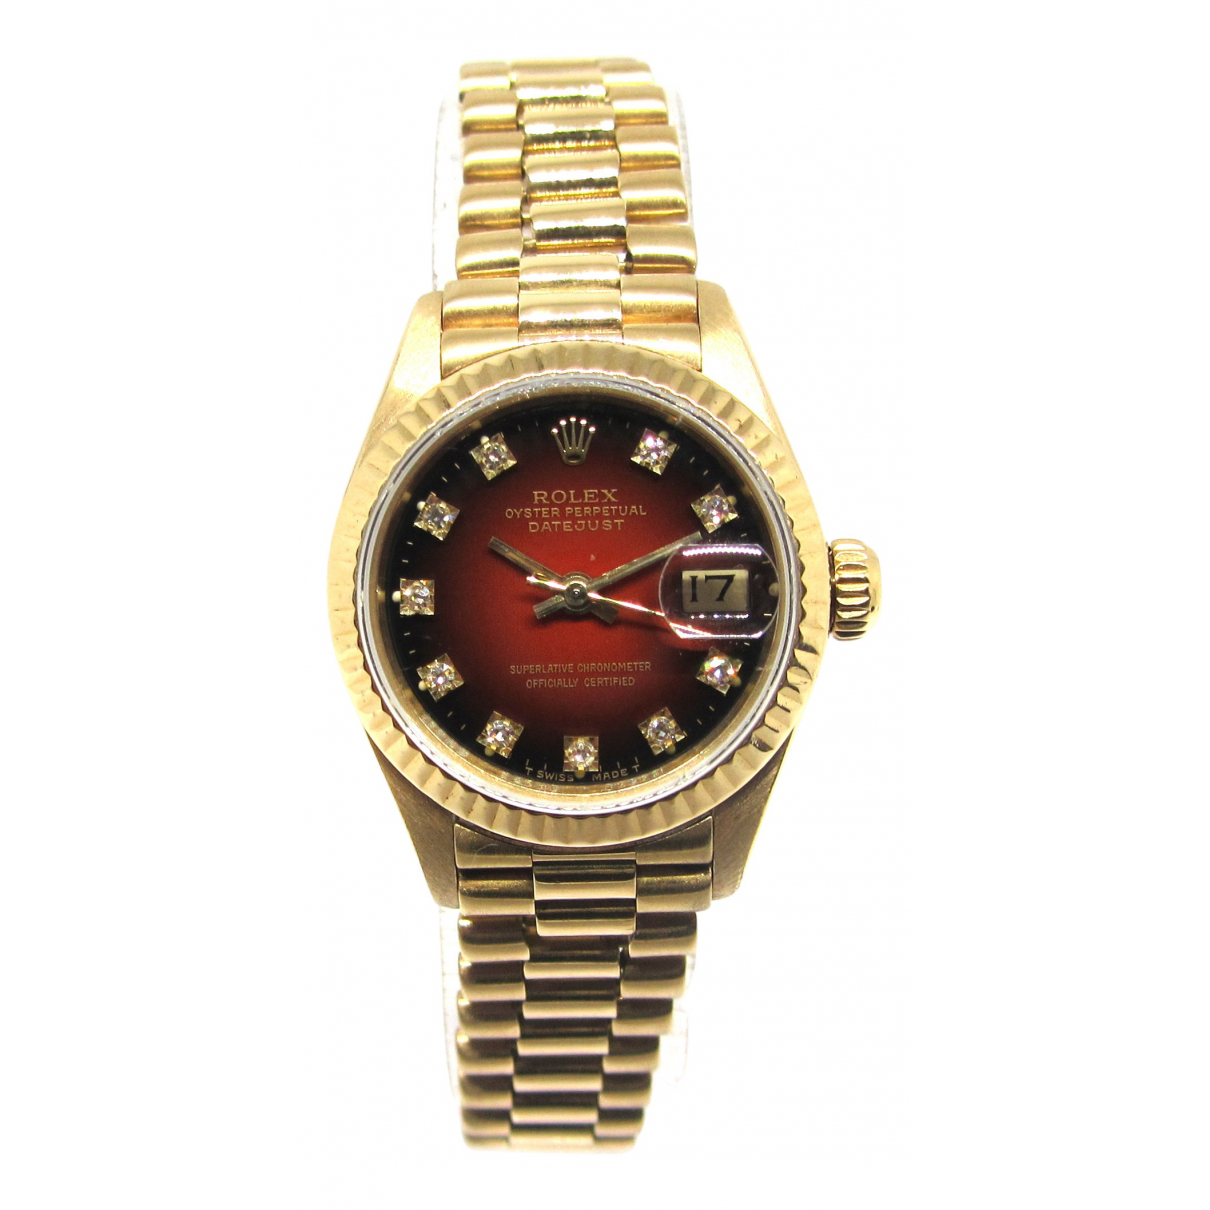 Reloj Lady DateJust 26mm de Oro amarillo Rolex